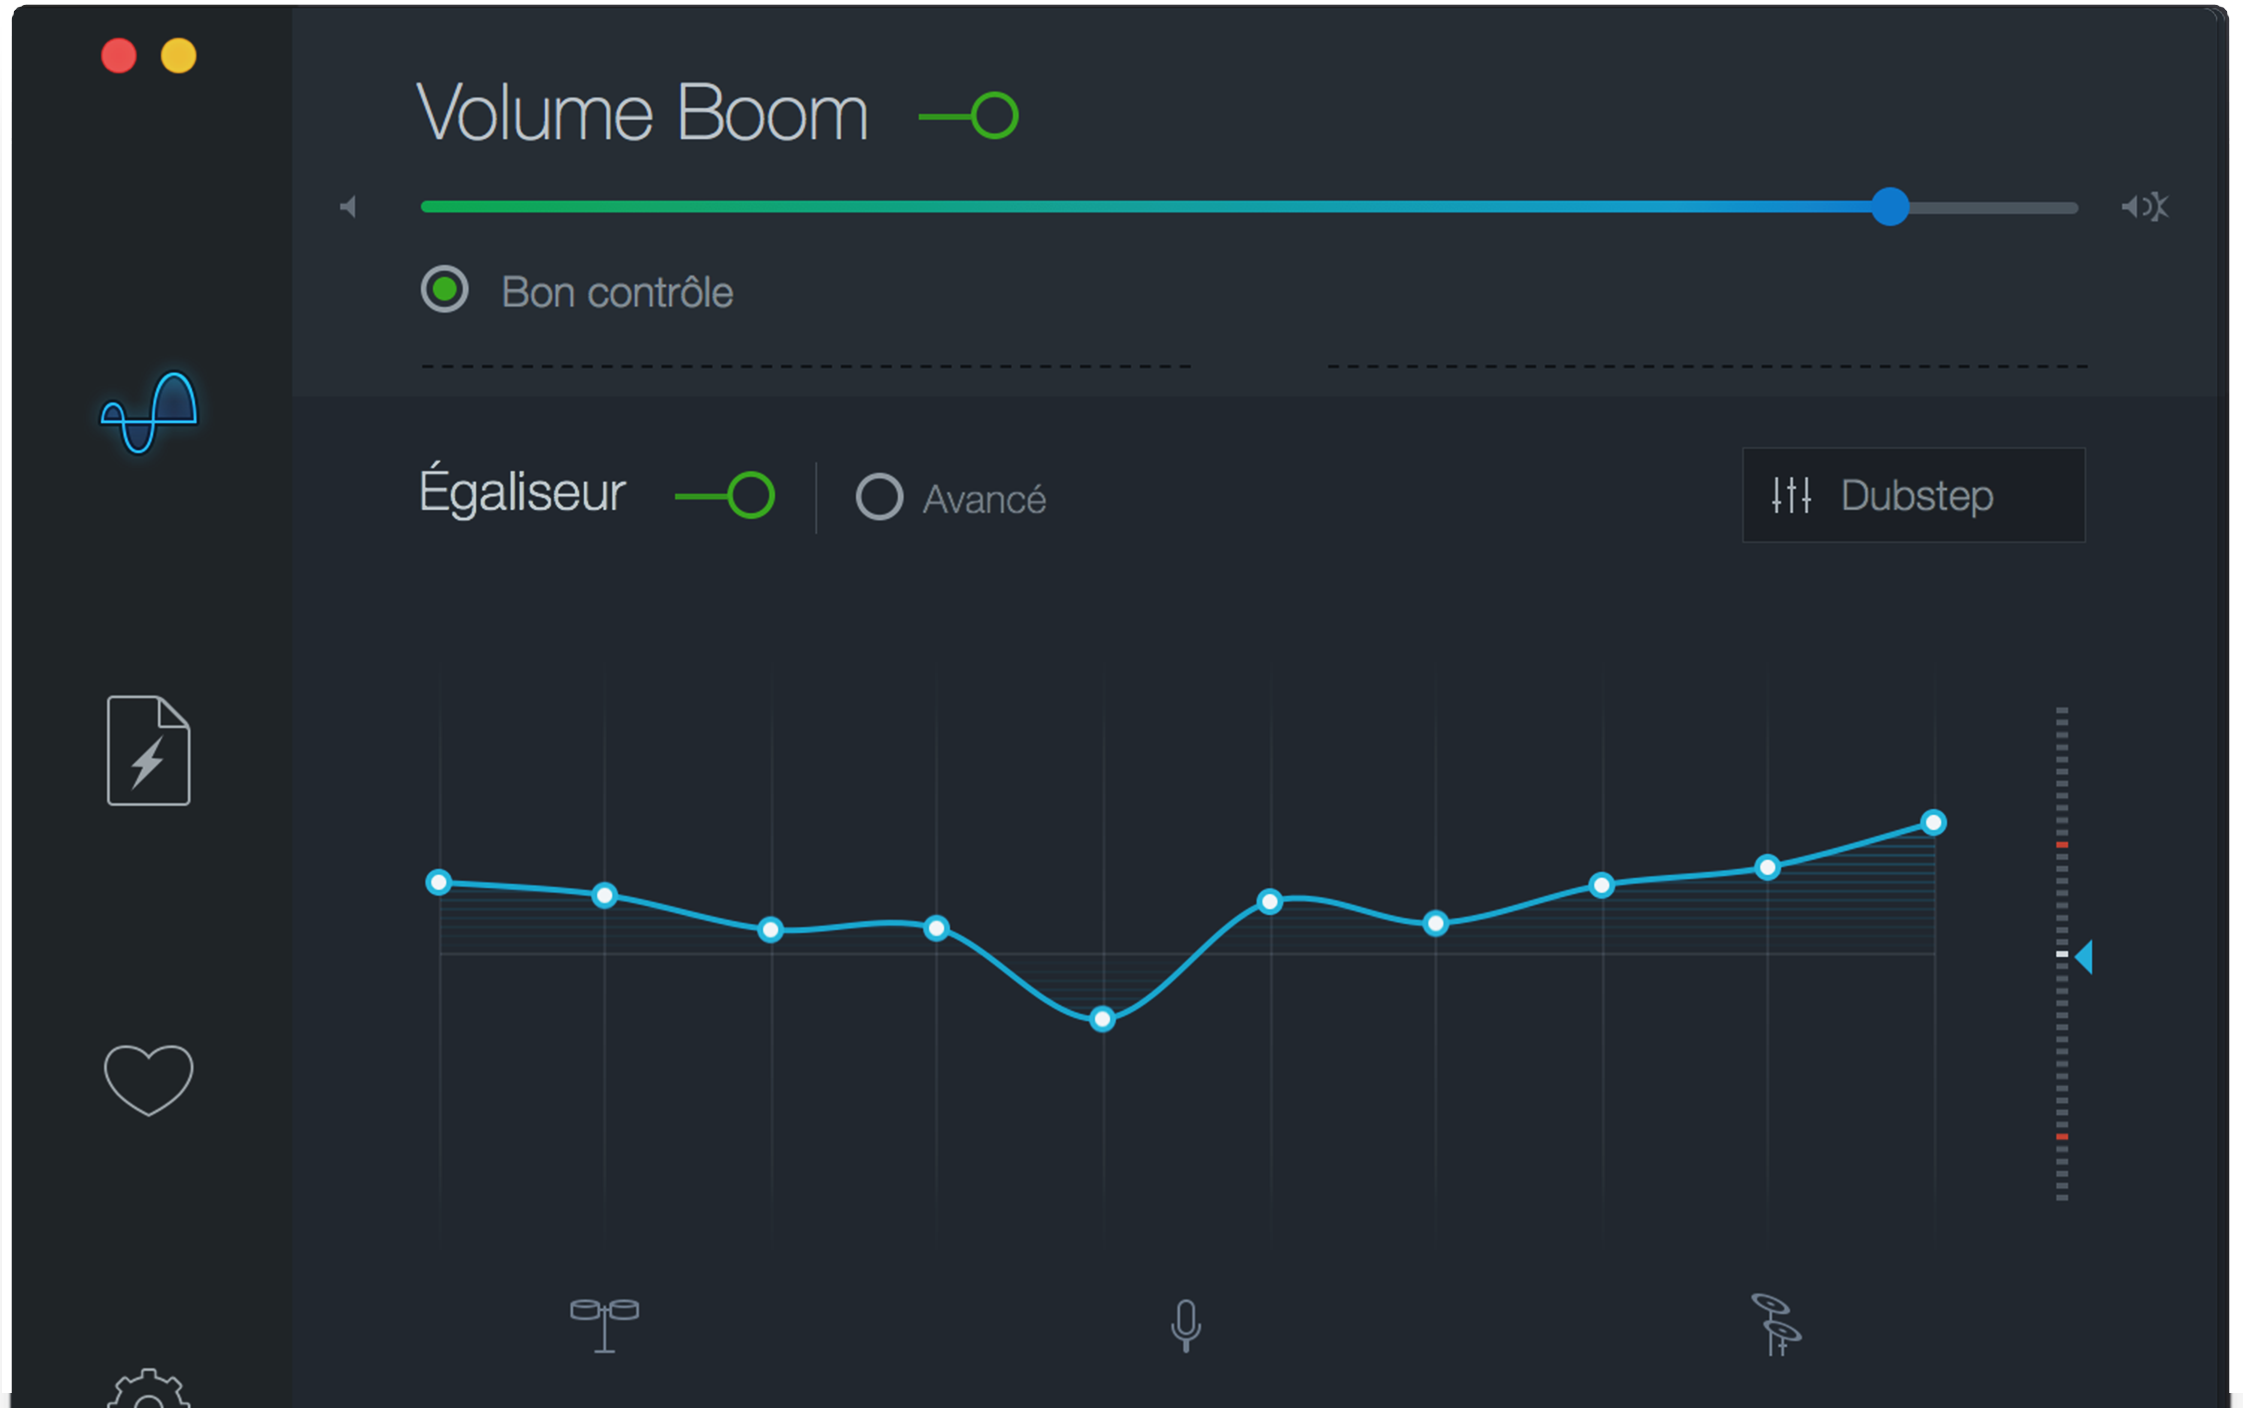 Interface de l'amplificateur de volume Boom 2 pour Mac